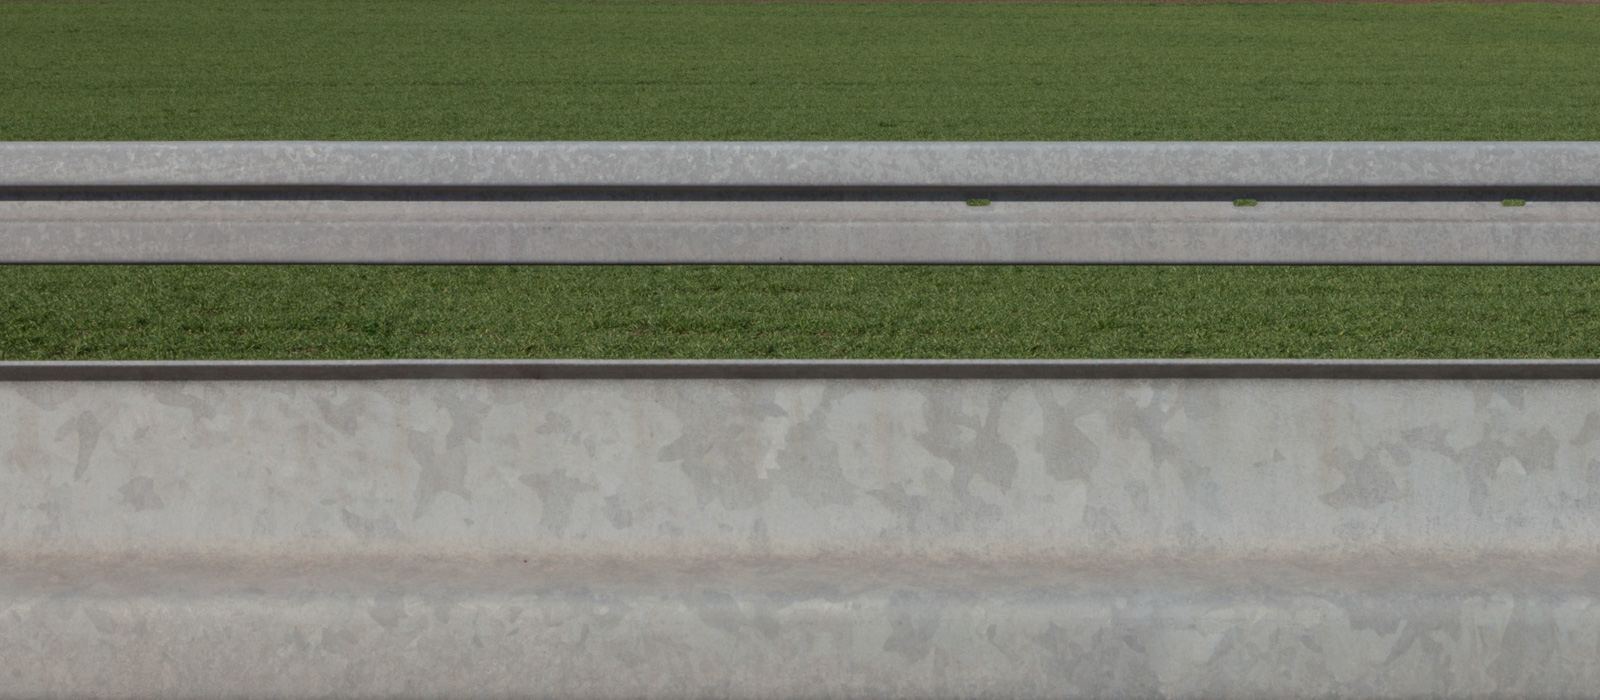 minimalistic horizontal image, showing two guardrails against grass – letting them seem two-dimensional